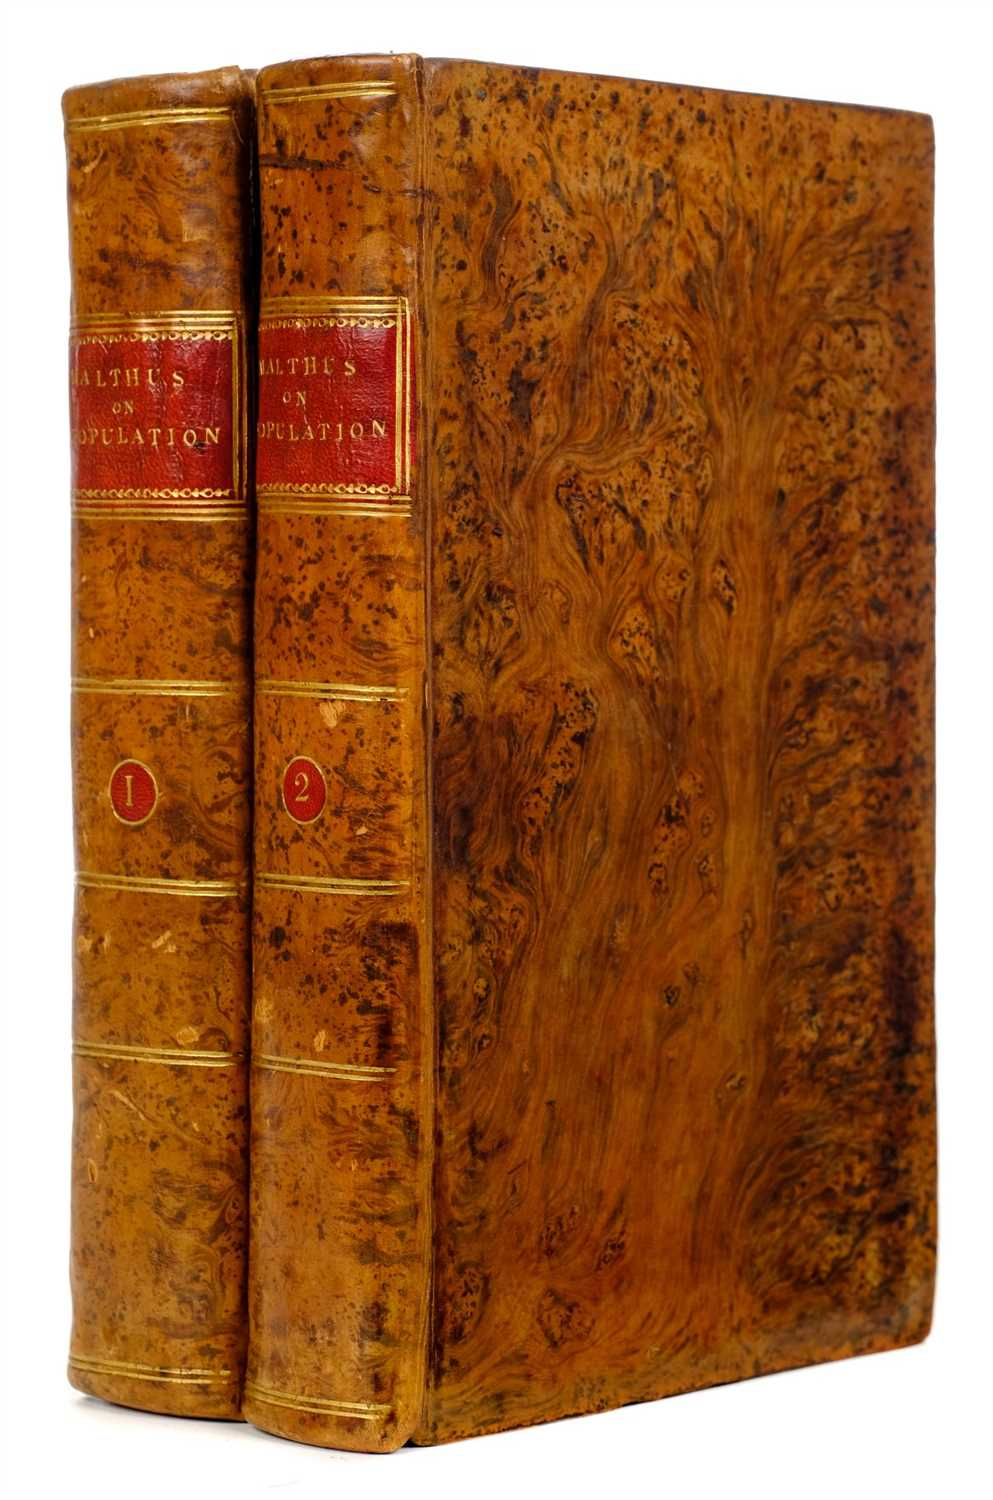 Lot 338 - Malthus (Thomas). An Essay on the Principle of Population, 3rd edition, 1806